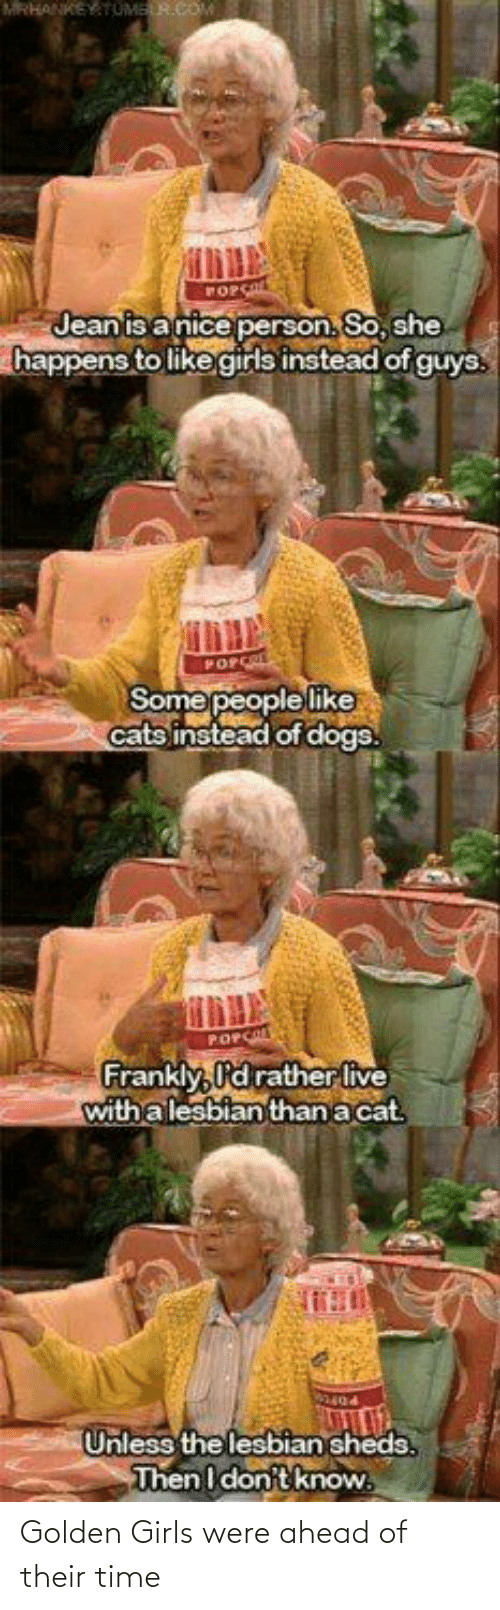 Ahead: Golden Girls were ahead of their time